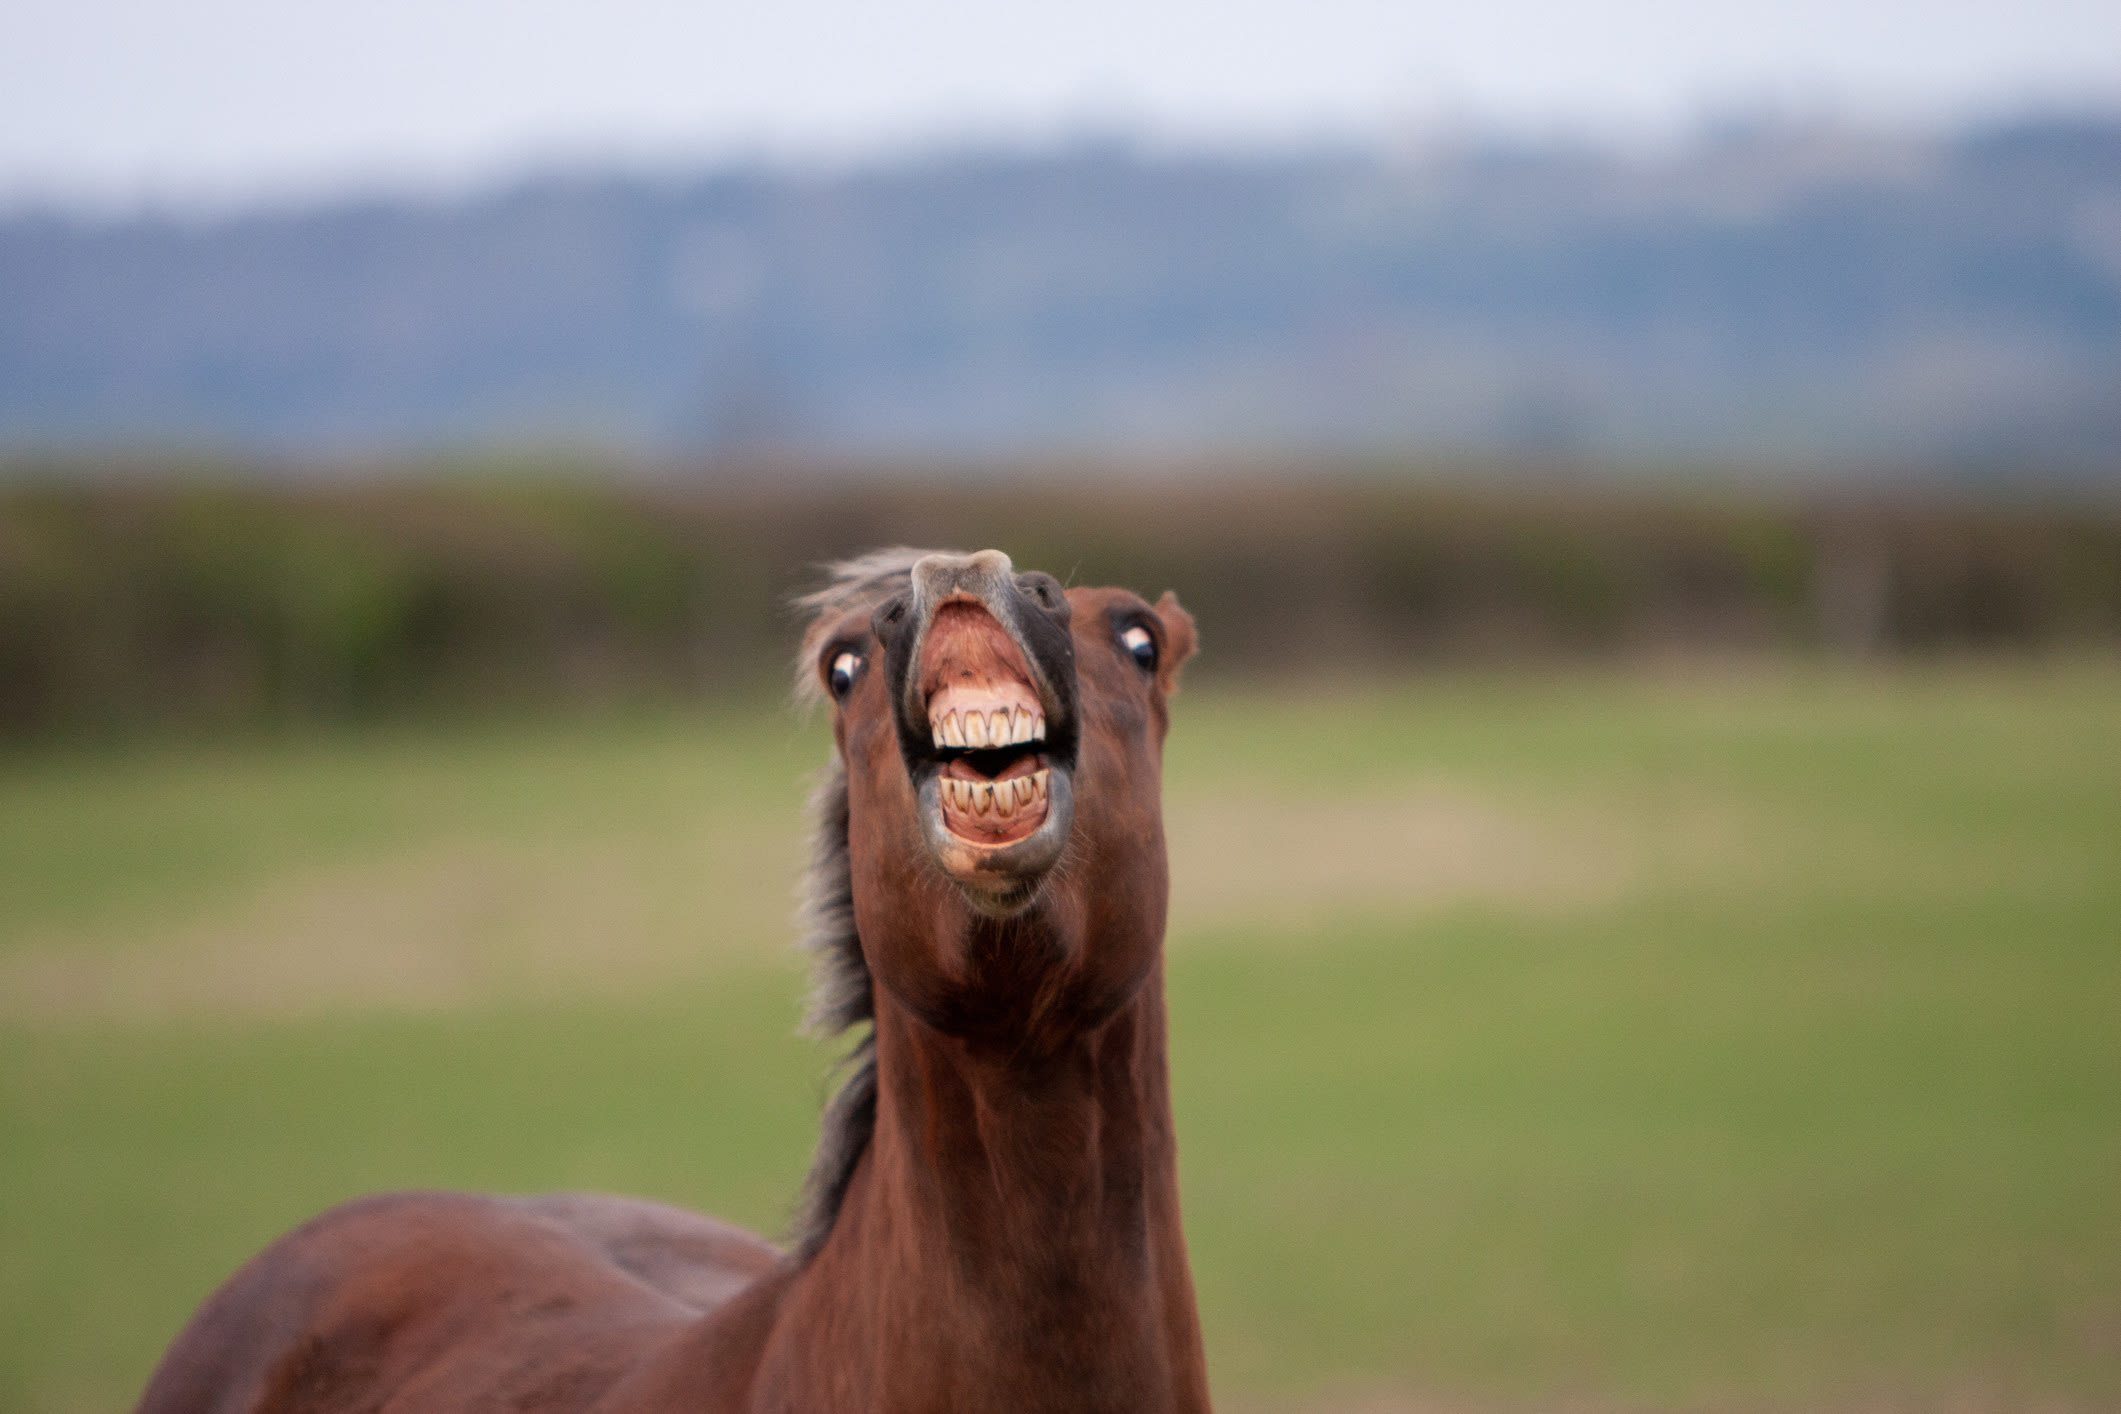 a horse neighing with its lips flapping